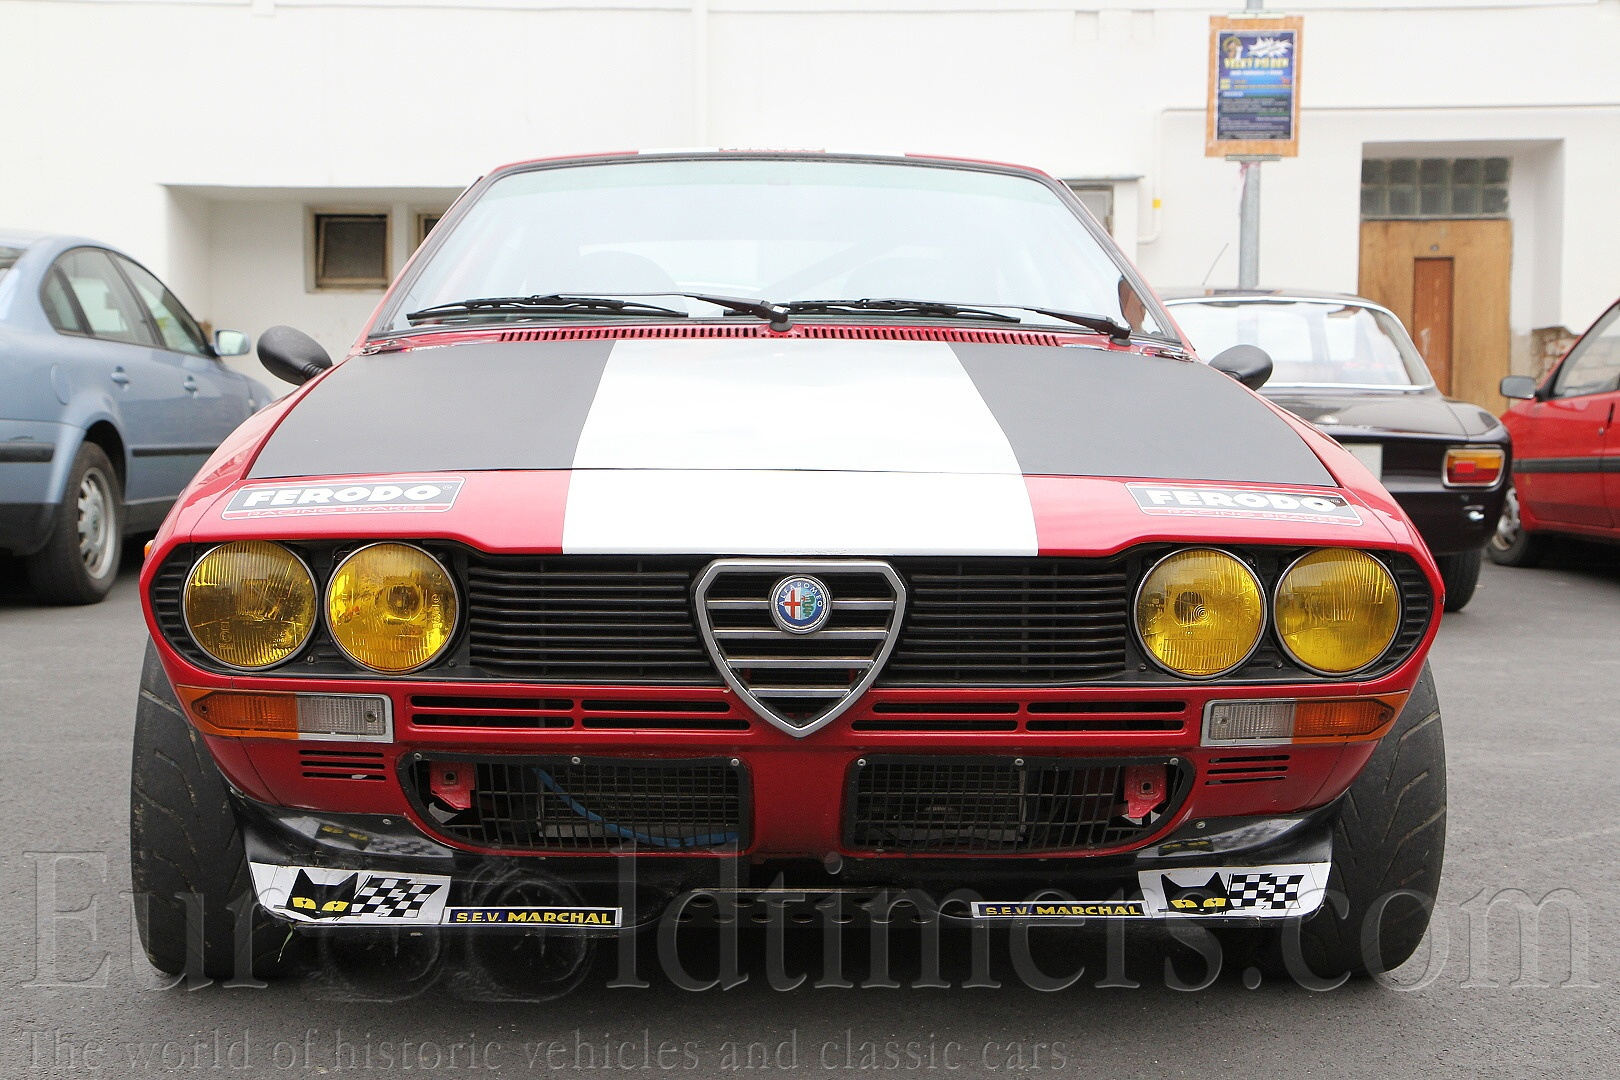 2018 Alfa Romeo Alfetta GTV 2.0 photo - 1